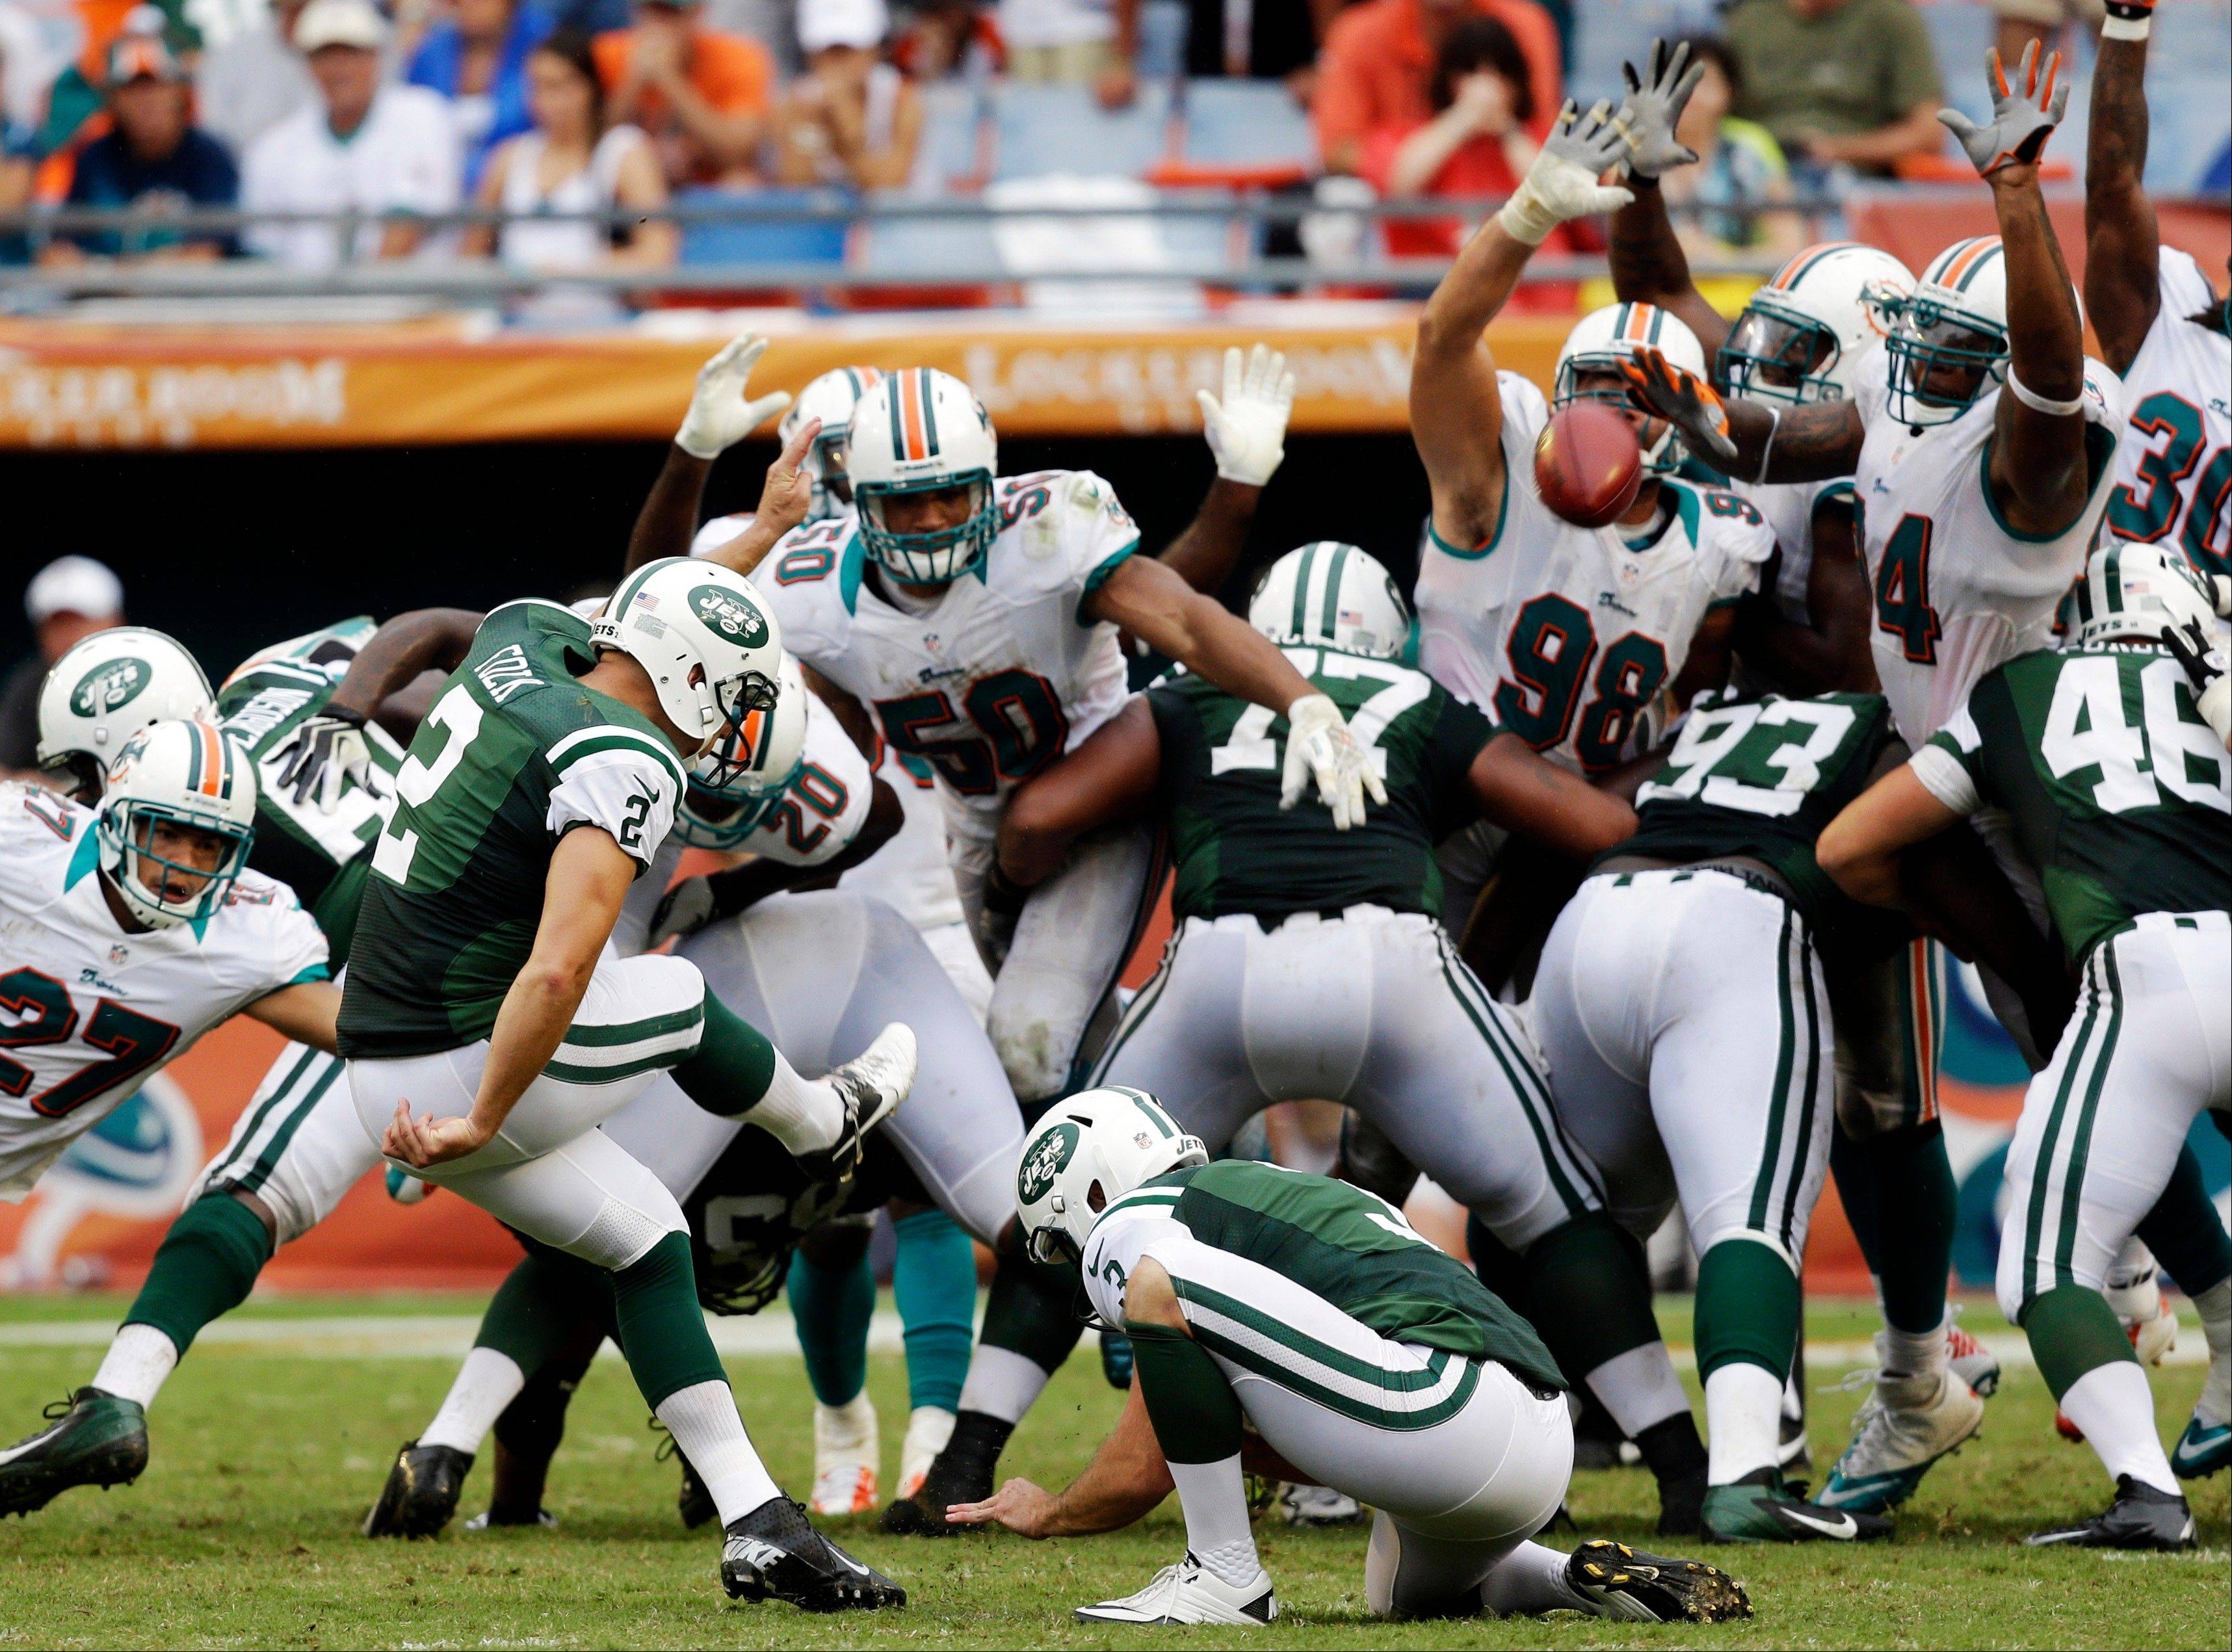 New York Jets kicker Nick Folk makes the game-winning field goal in overtime to defeat the Miami Dolphins 23-20 on Sunday in Miami.